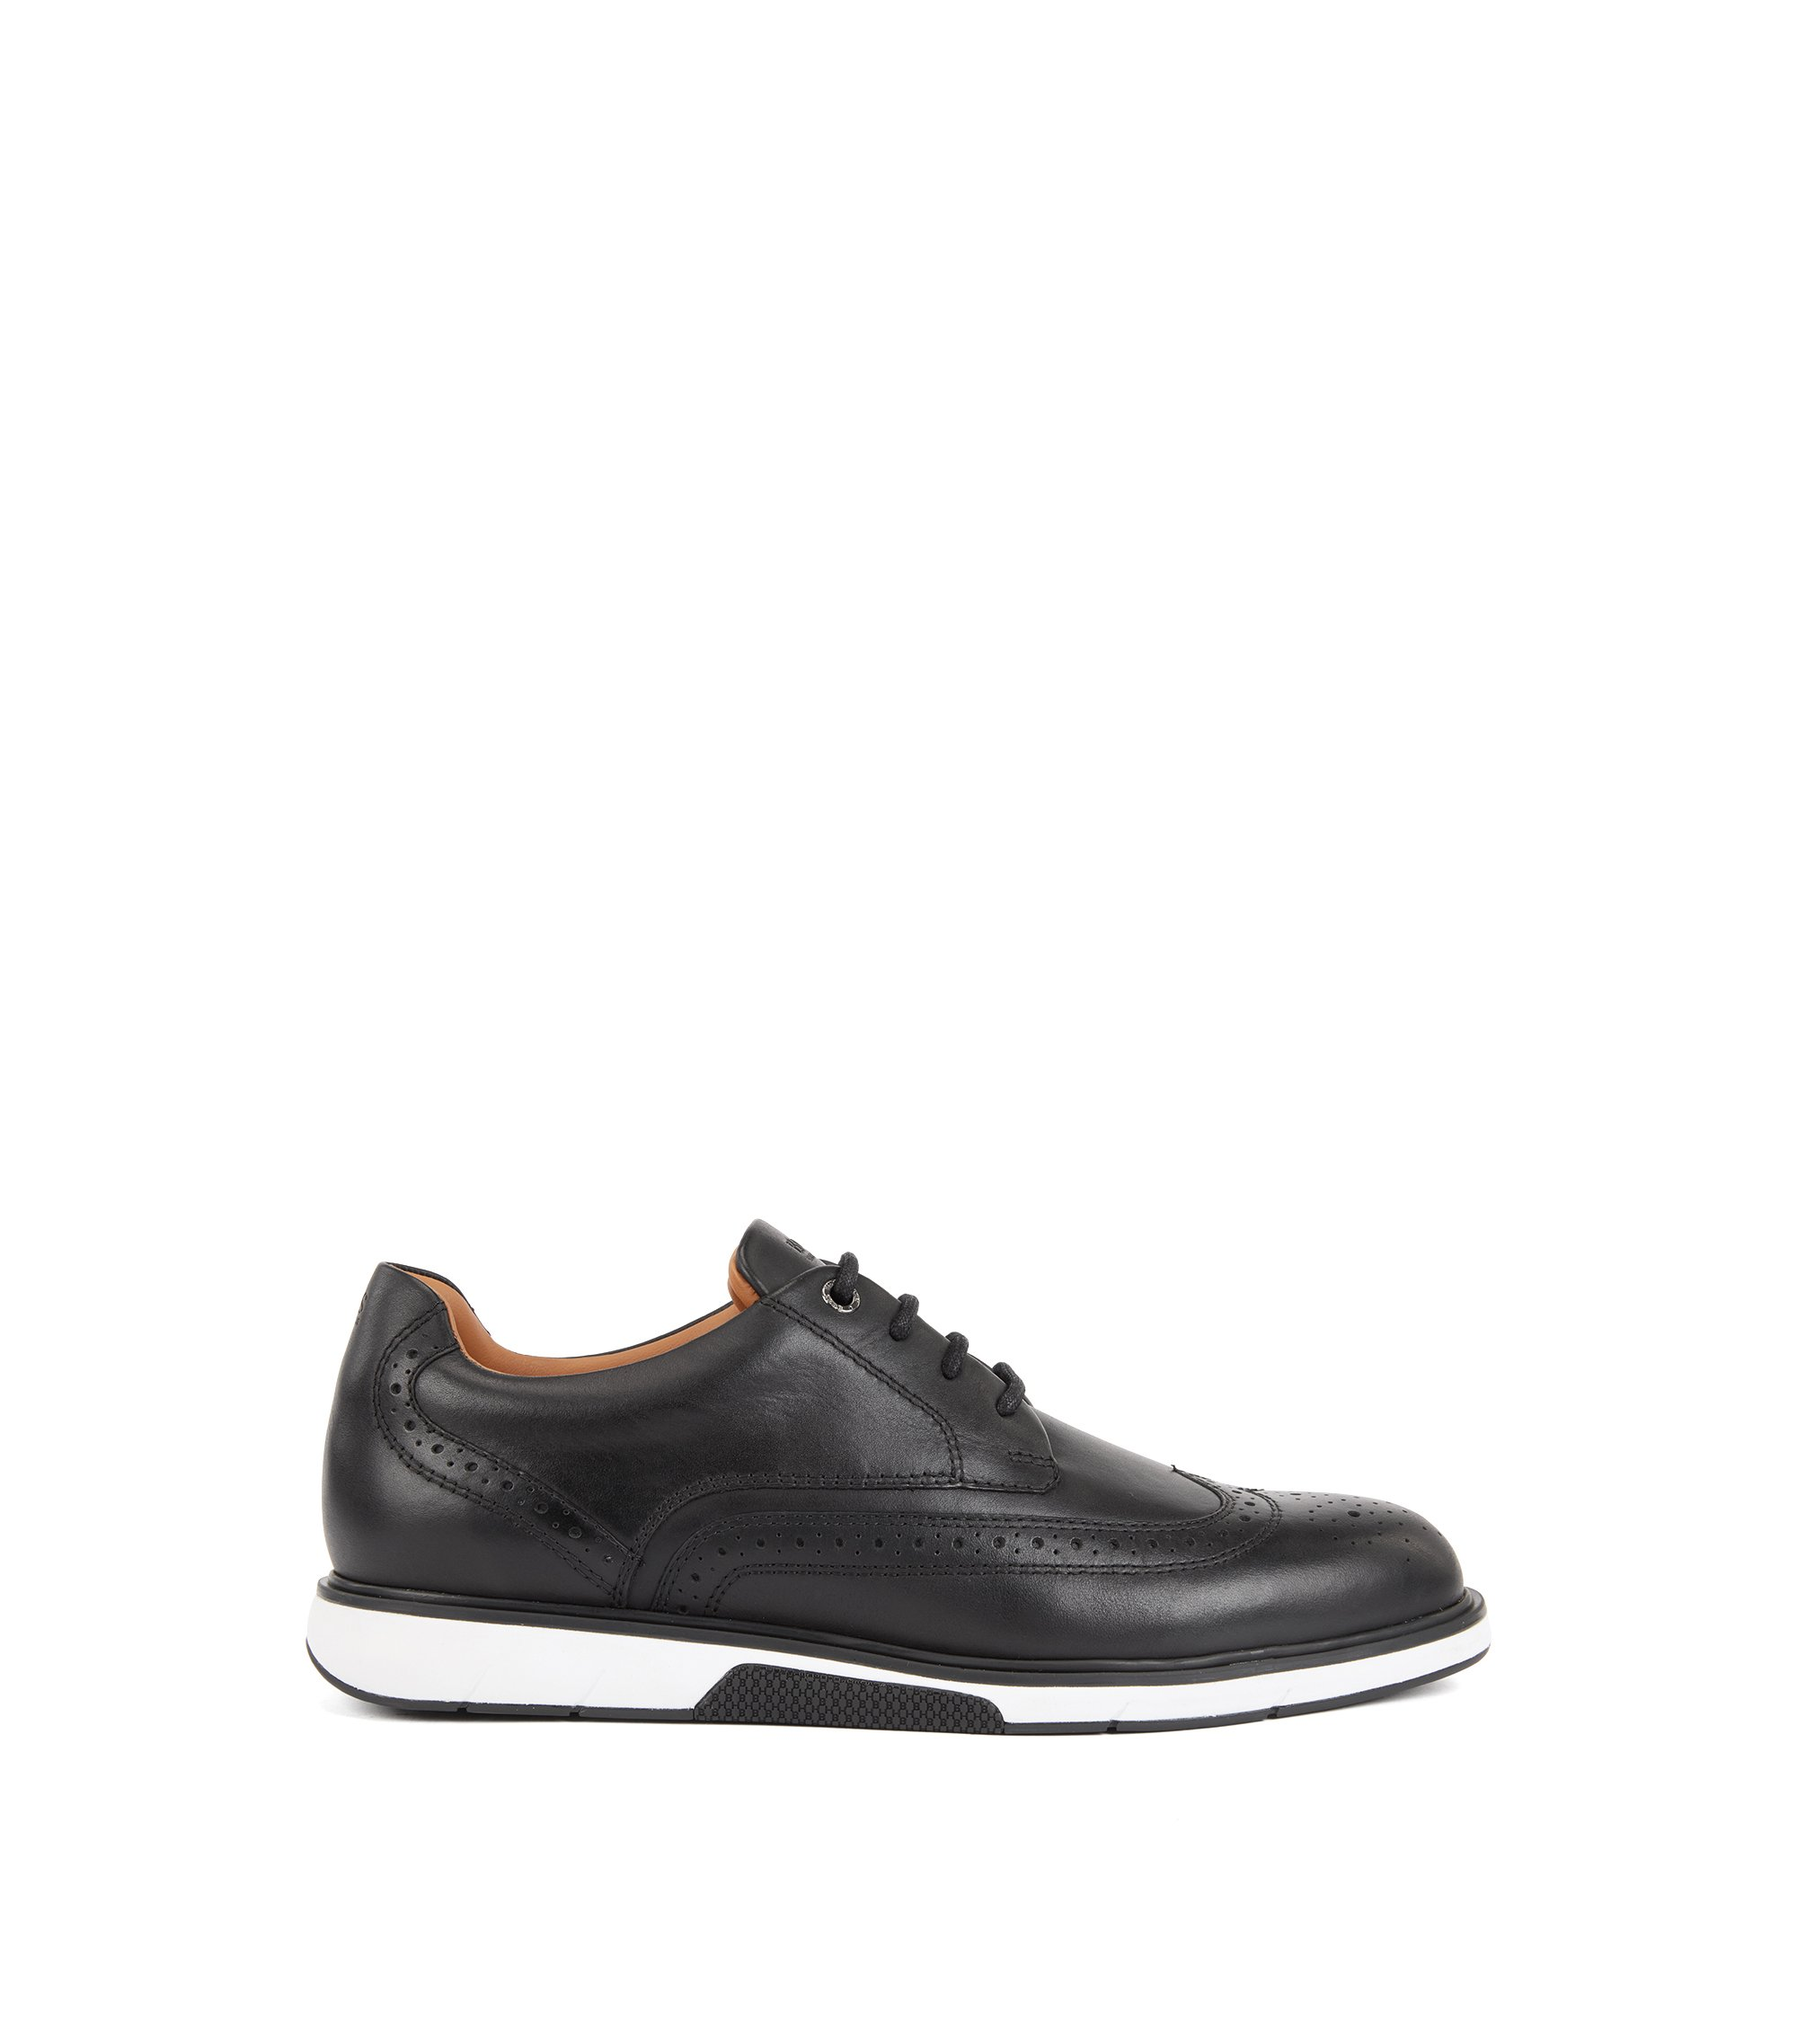 Leather Derby shoes with trainer-style sole, Noir